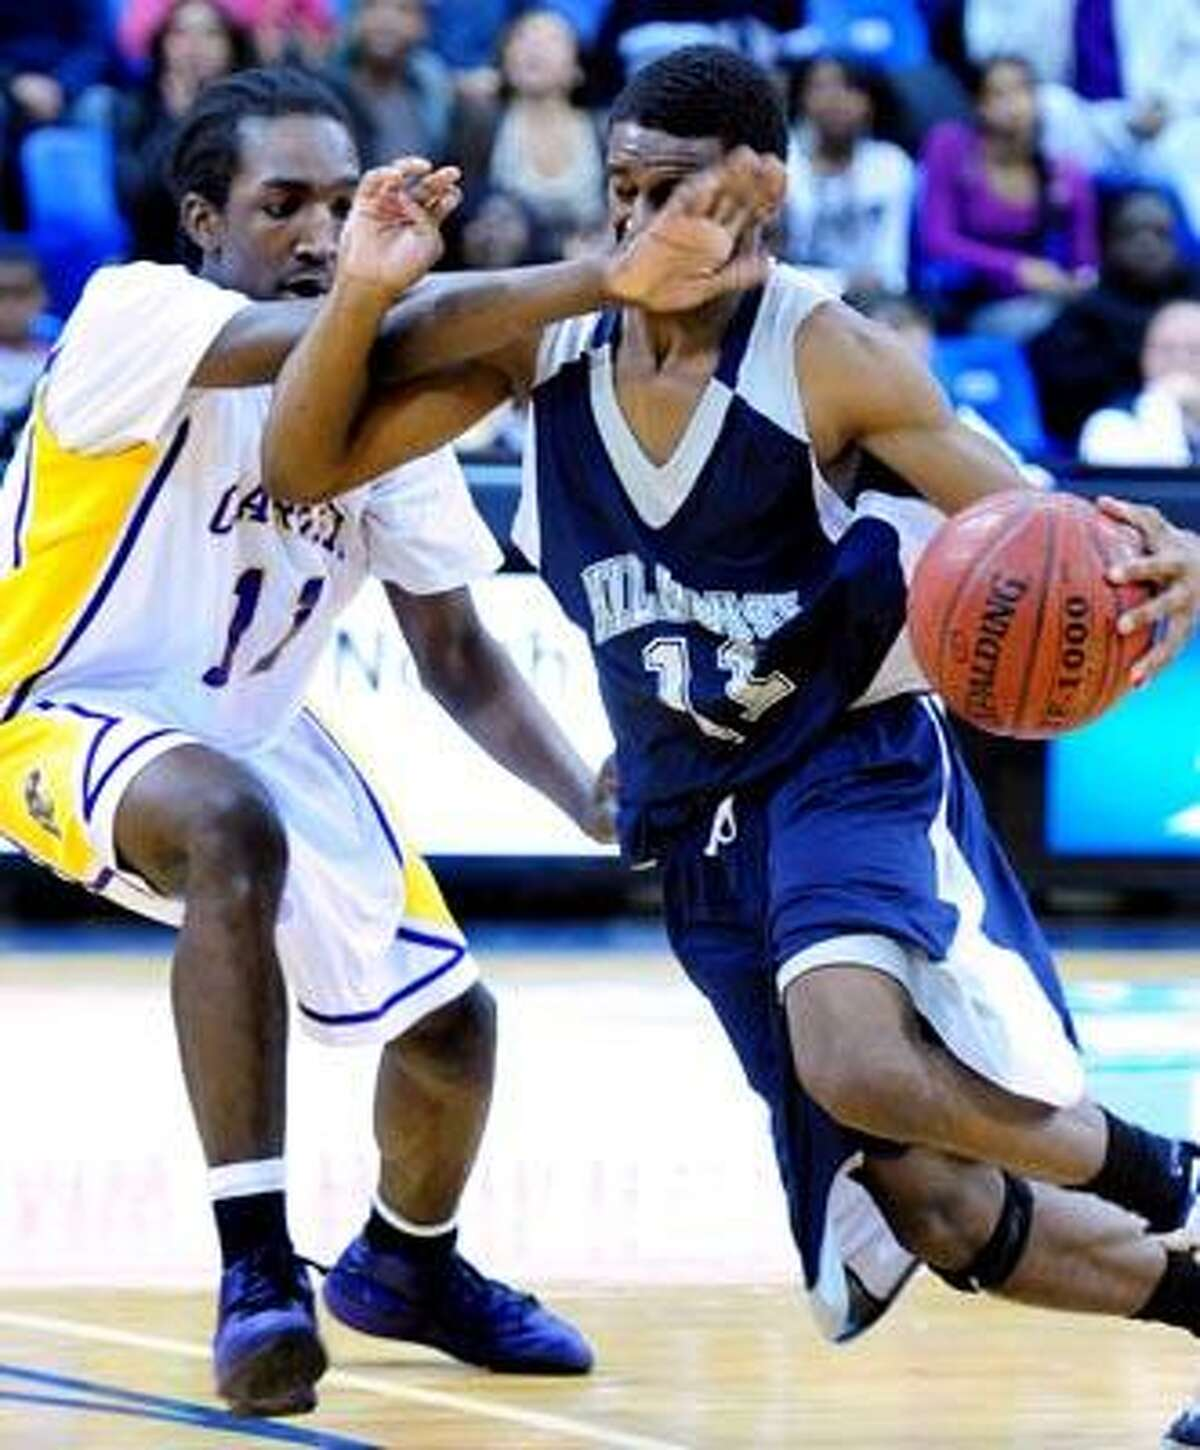 Treyvon Moore (left) of Career tries to guard Lemuel Crudup (right) of Hillhouse in the SCC Boys Basketball Championship Game at the TD Bank Sports Center in Hamden on 3/2/2011.Photo by Arnold Gold/New Haven Register AG0404C